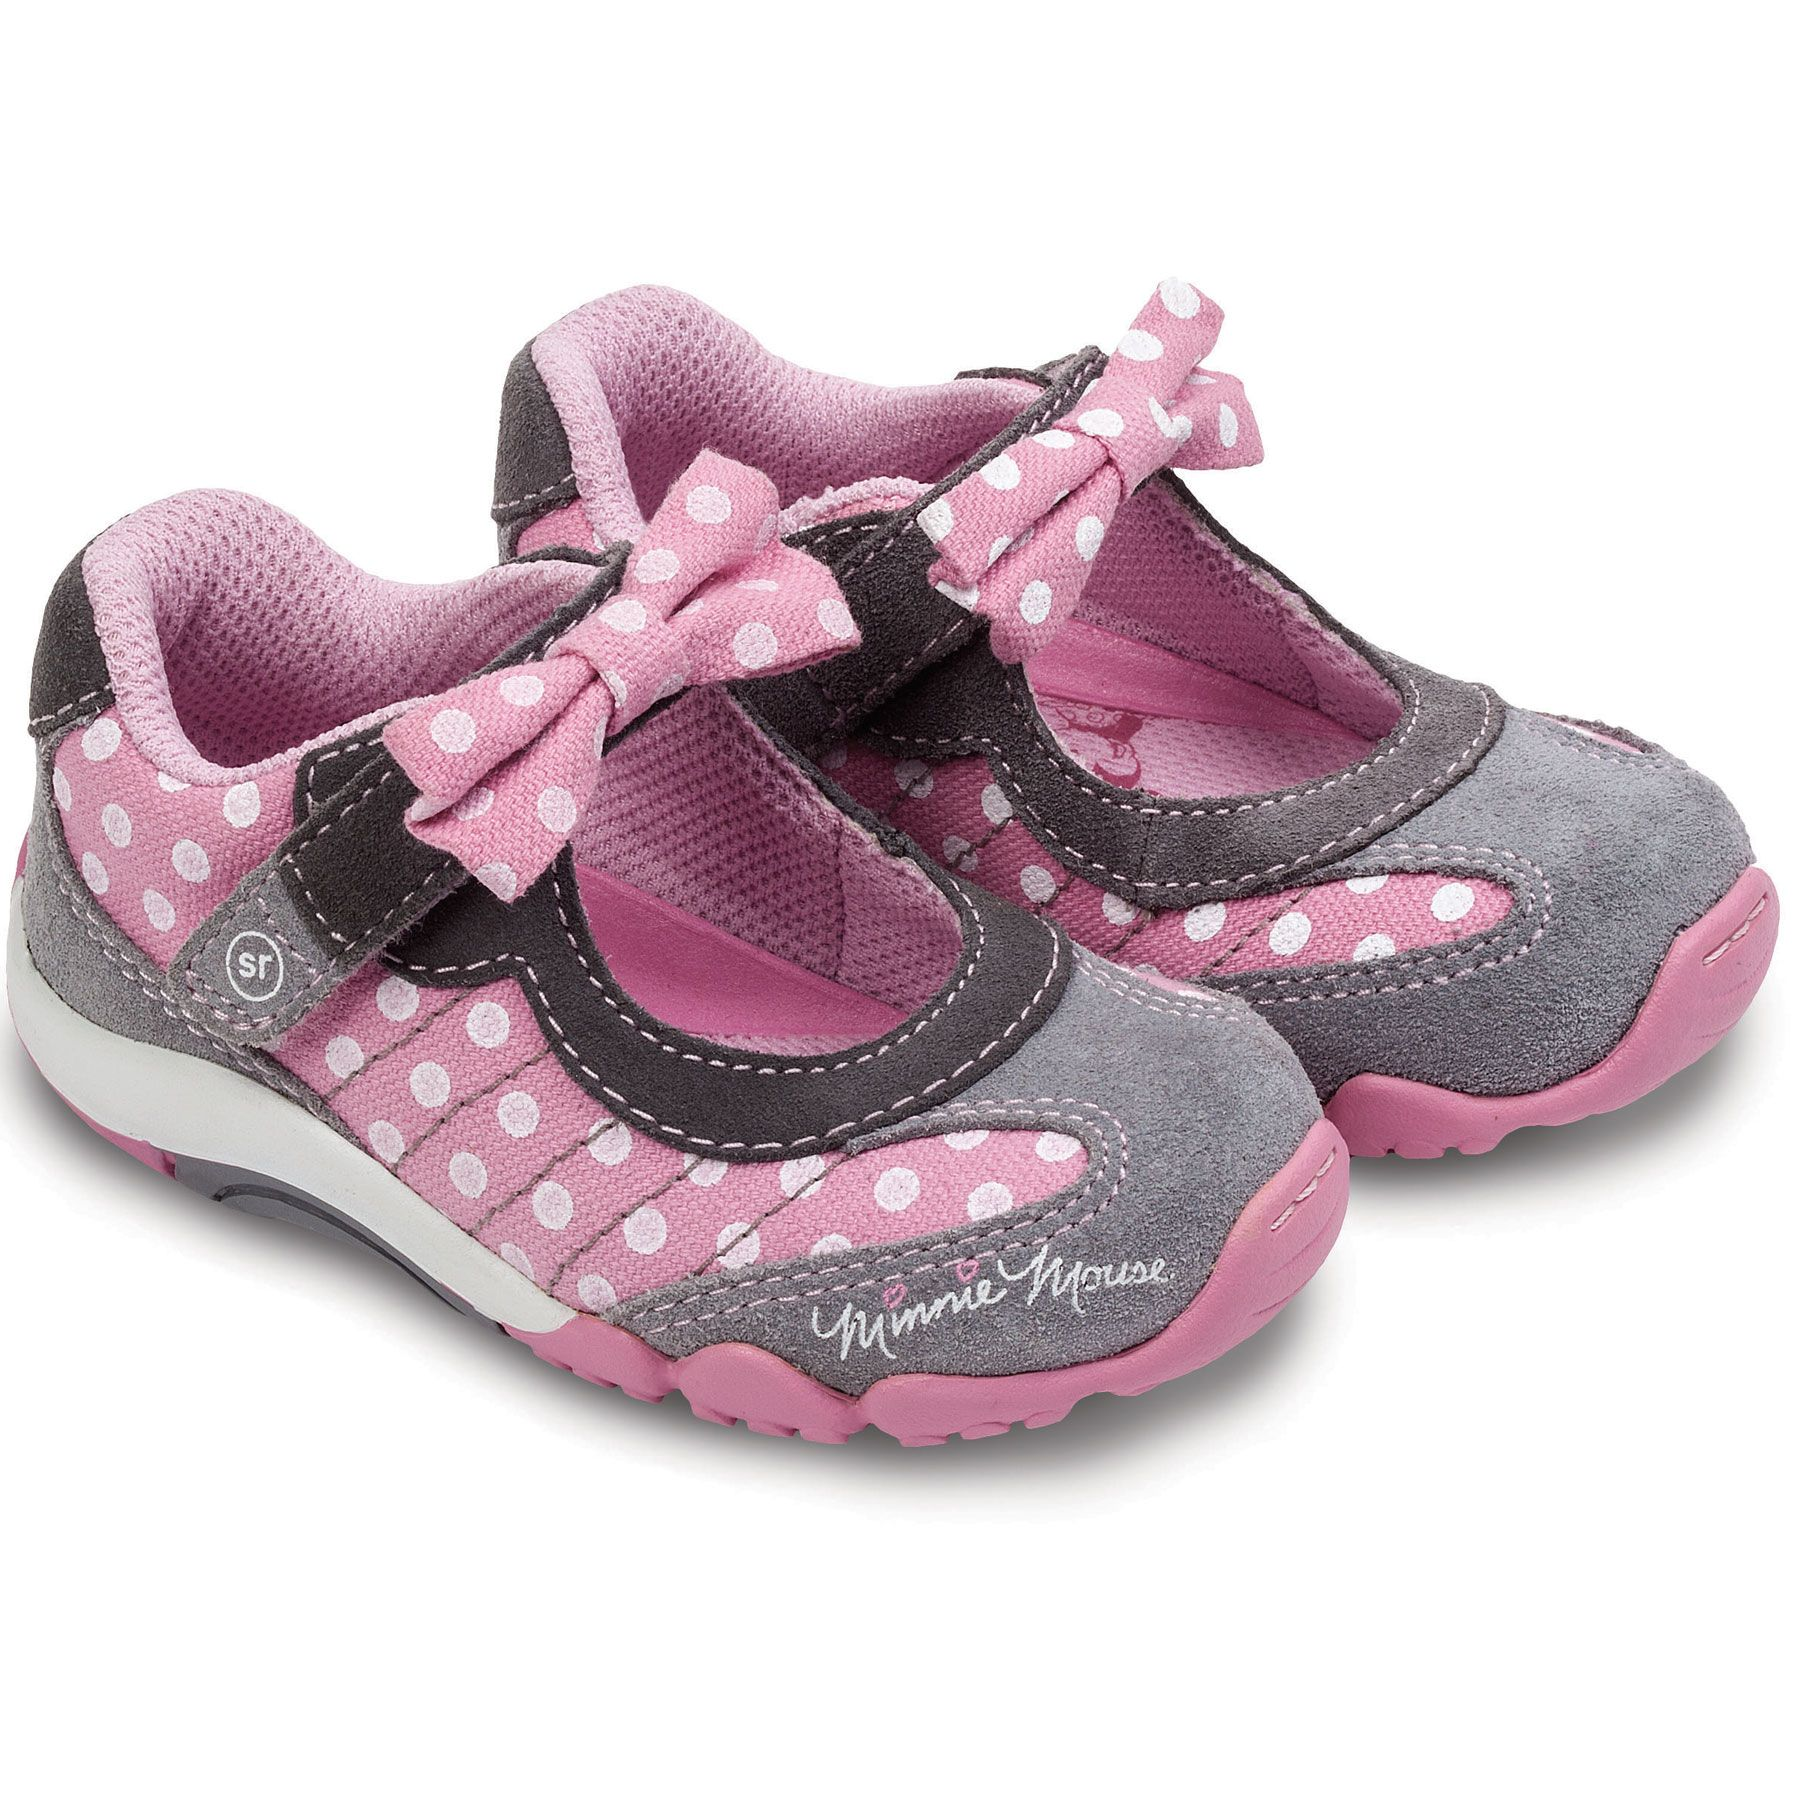 MINNIE MOUSE SRT Gym Class Shoes by Stride Rite Baby